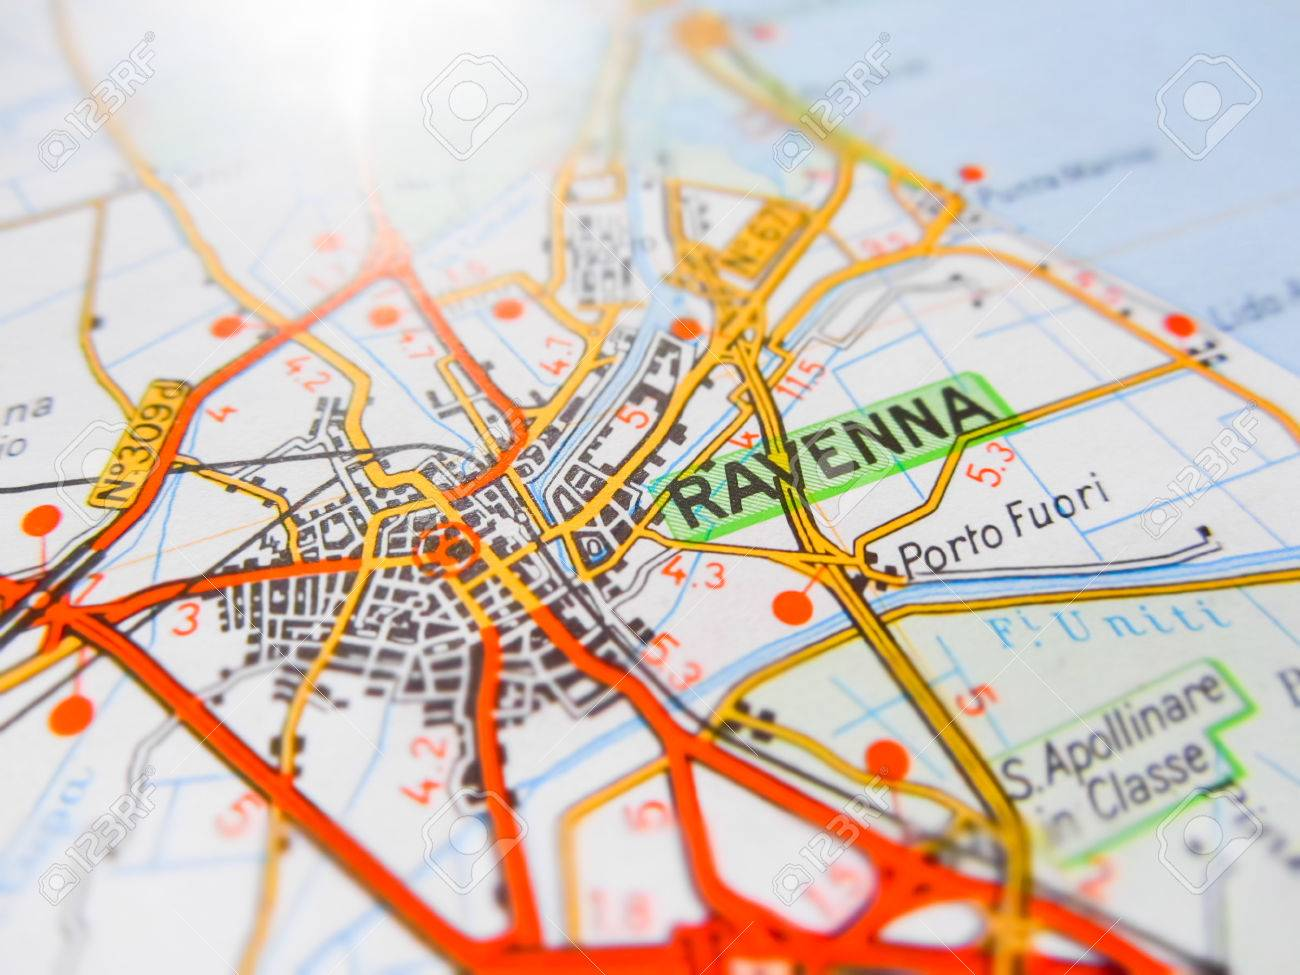 Ravenna City Over A Road Map ITALY Stock Photo Picture And